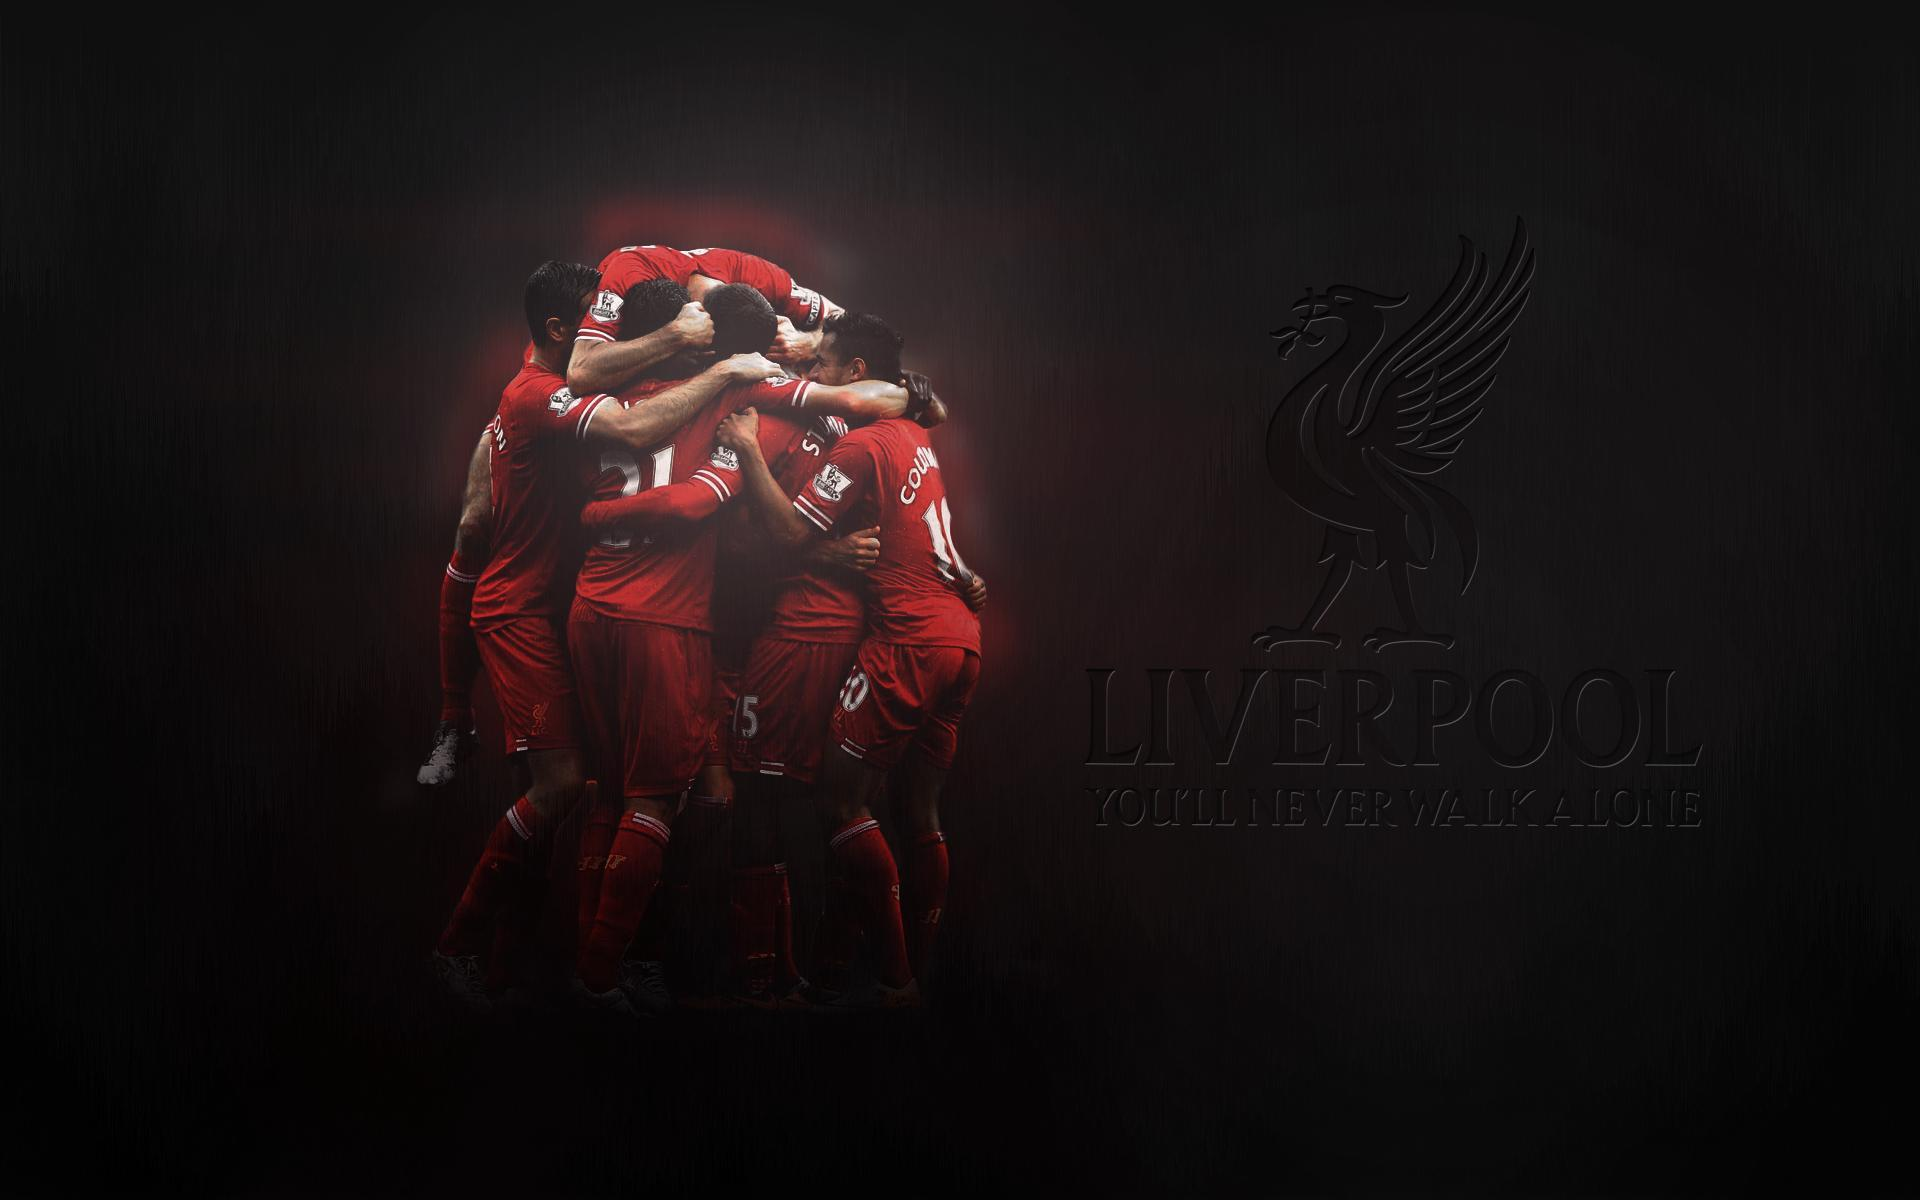 Liverpool wallpapers 2015 wallpaper cave - Lfc pictures free ...